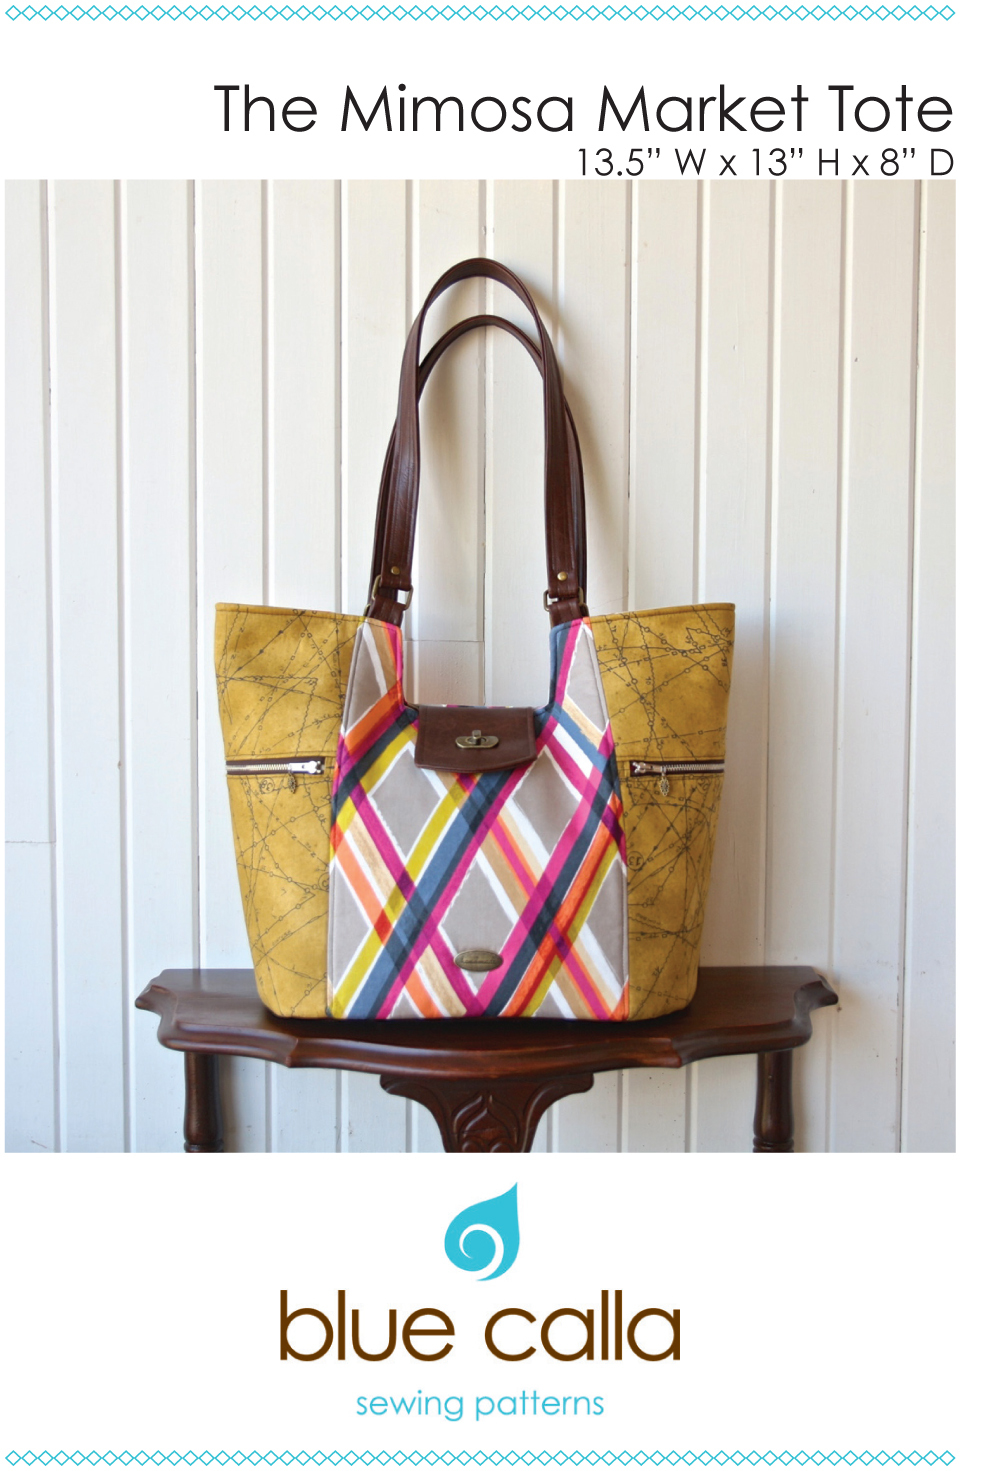 blue calla the mimosa market tote sewing pattern